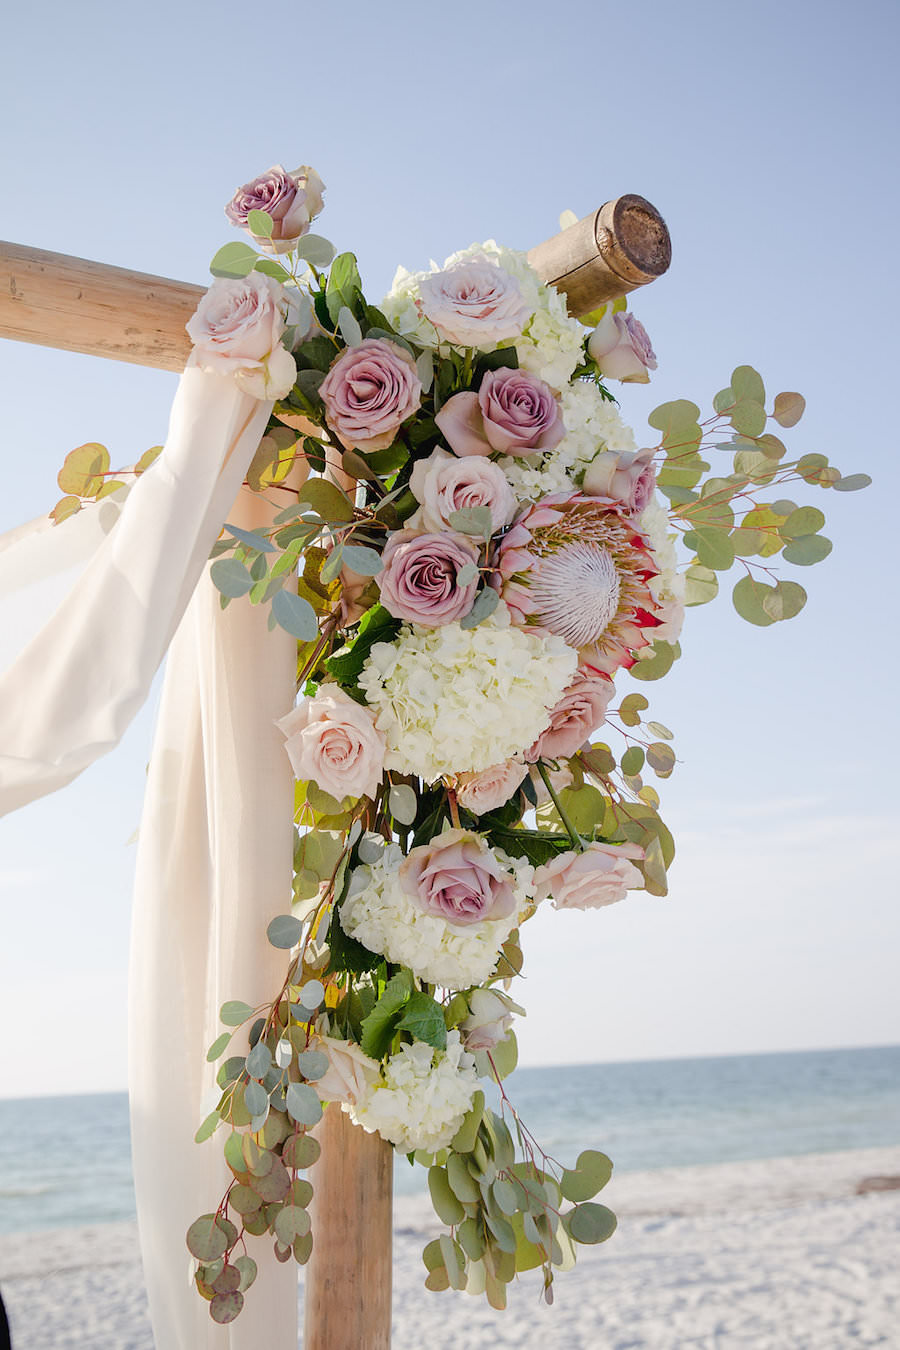 White and Blush Pink Dusty Rose Wedding Ceremony Floral Arrangement with White Ivory Hydrangeas with Greenery on Wooden Altar with Draping | Clearwater Beach Wedding Planner Parties a la Carte